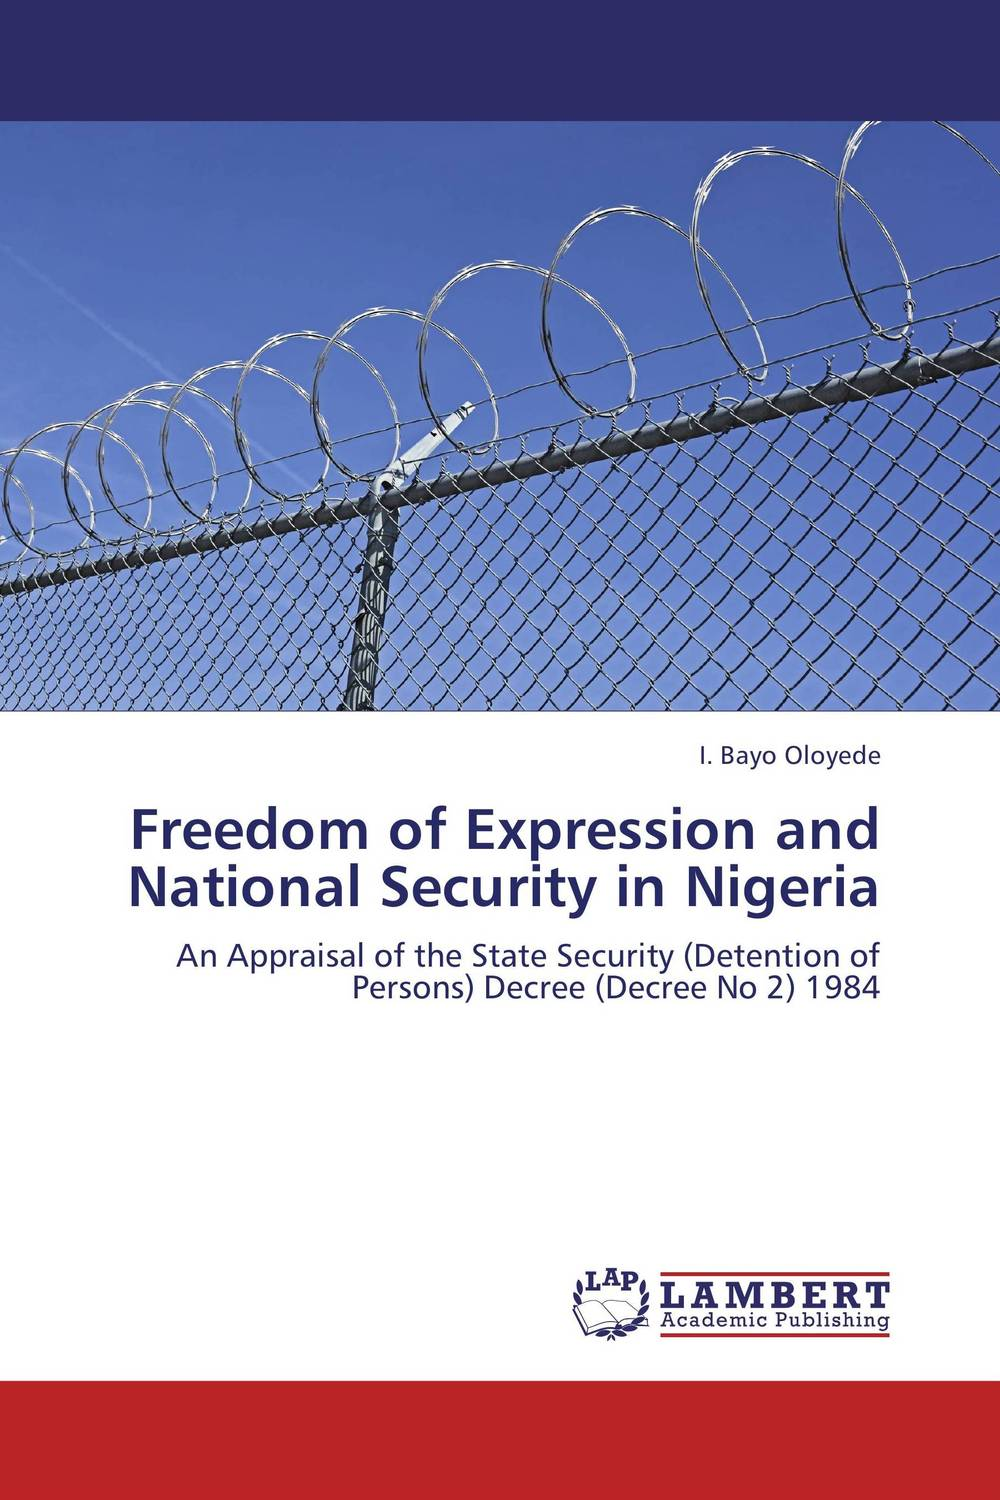 Freedom of Expression and National Security in Nigeria mart laar the power of freedom